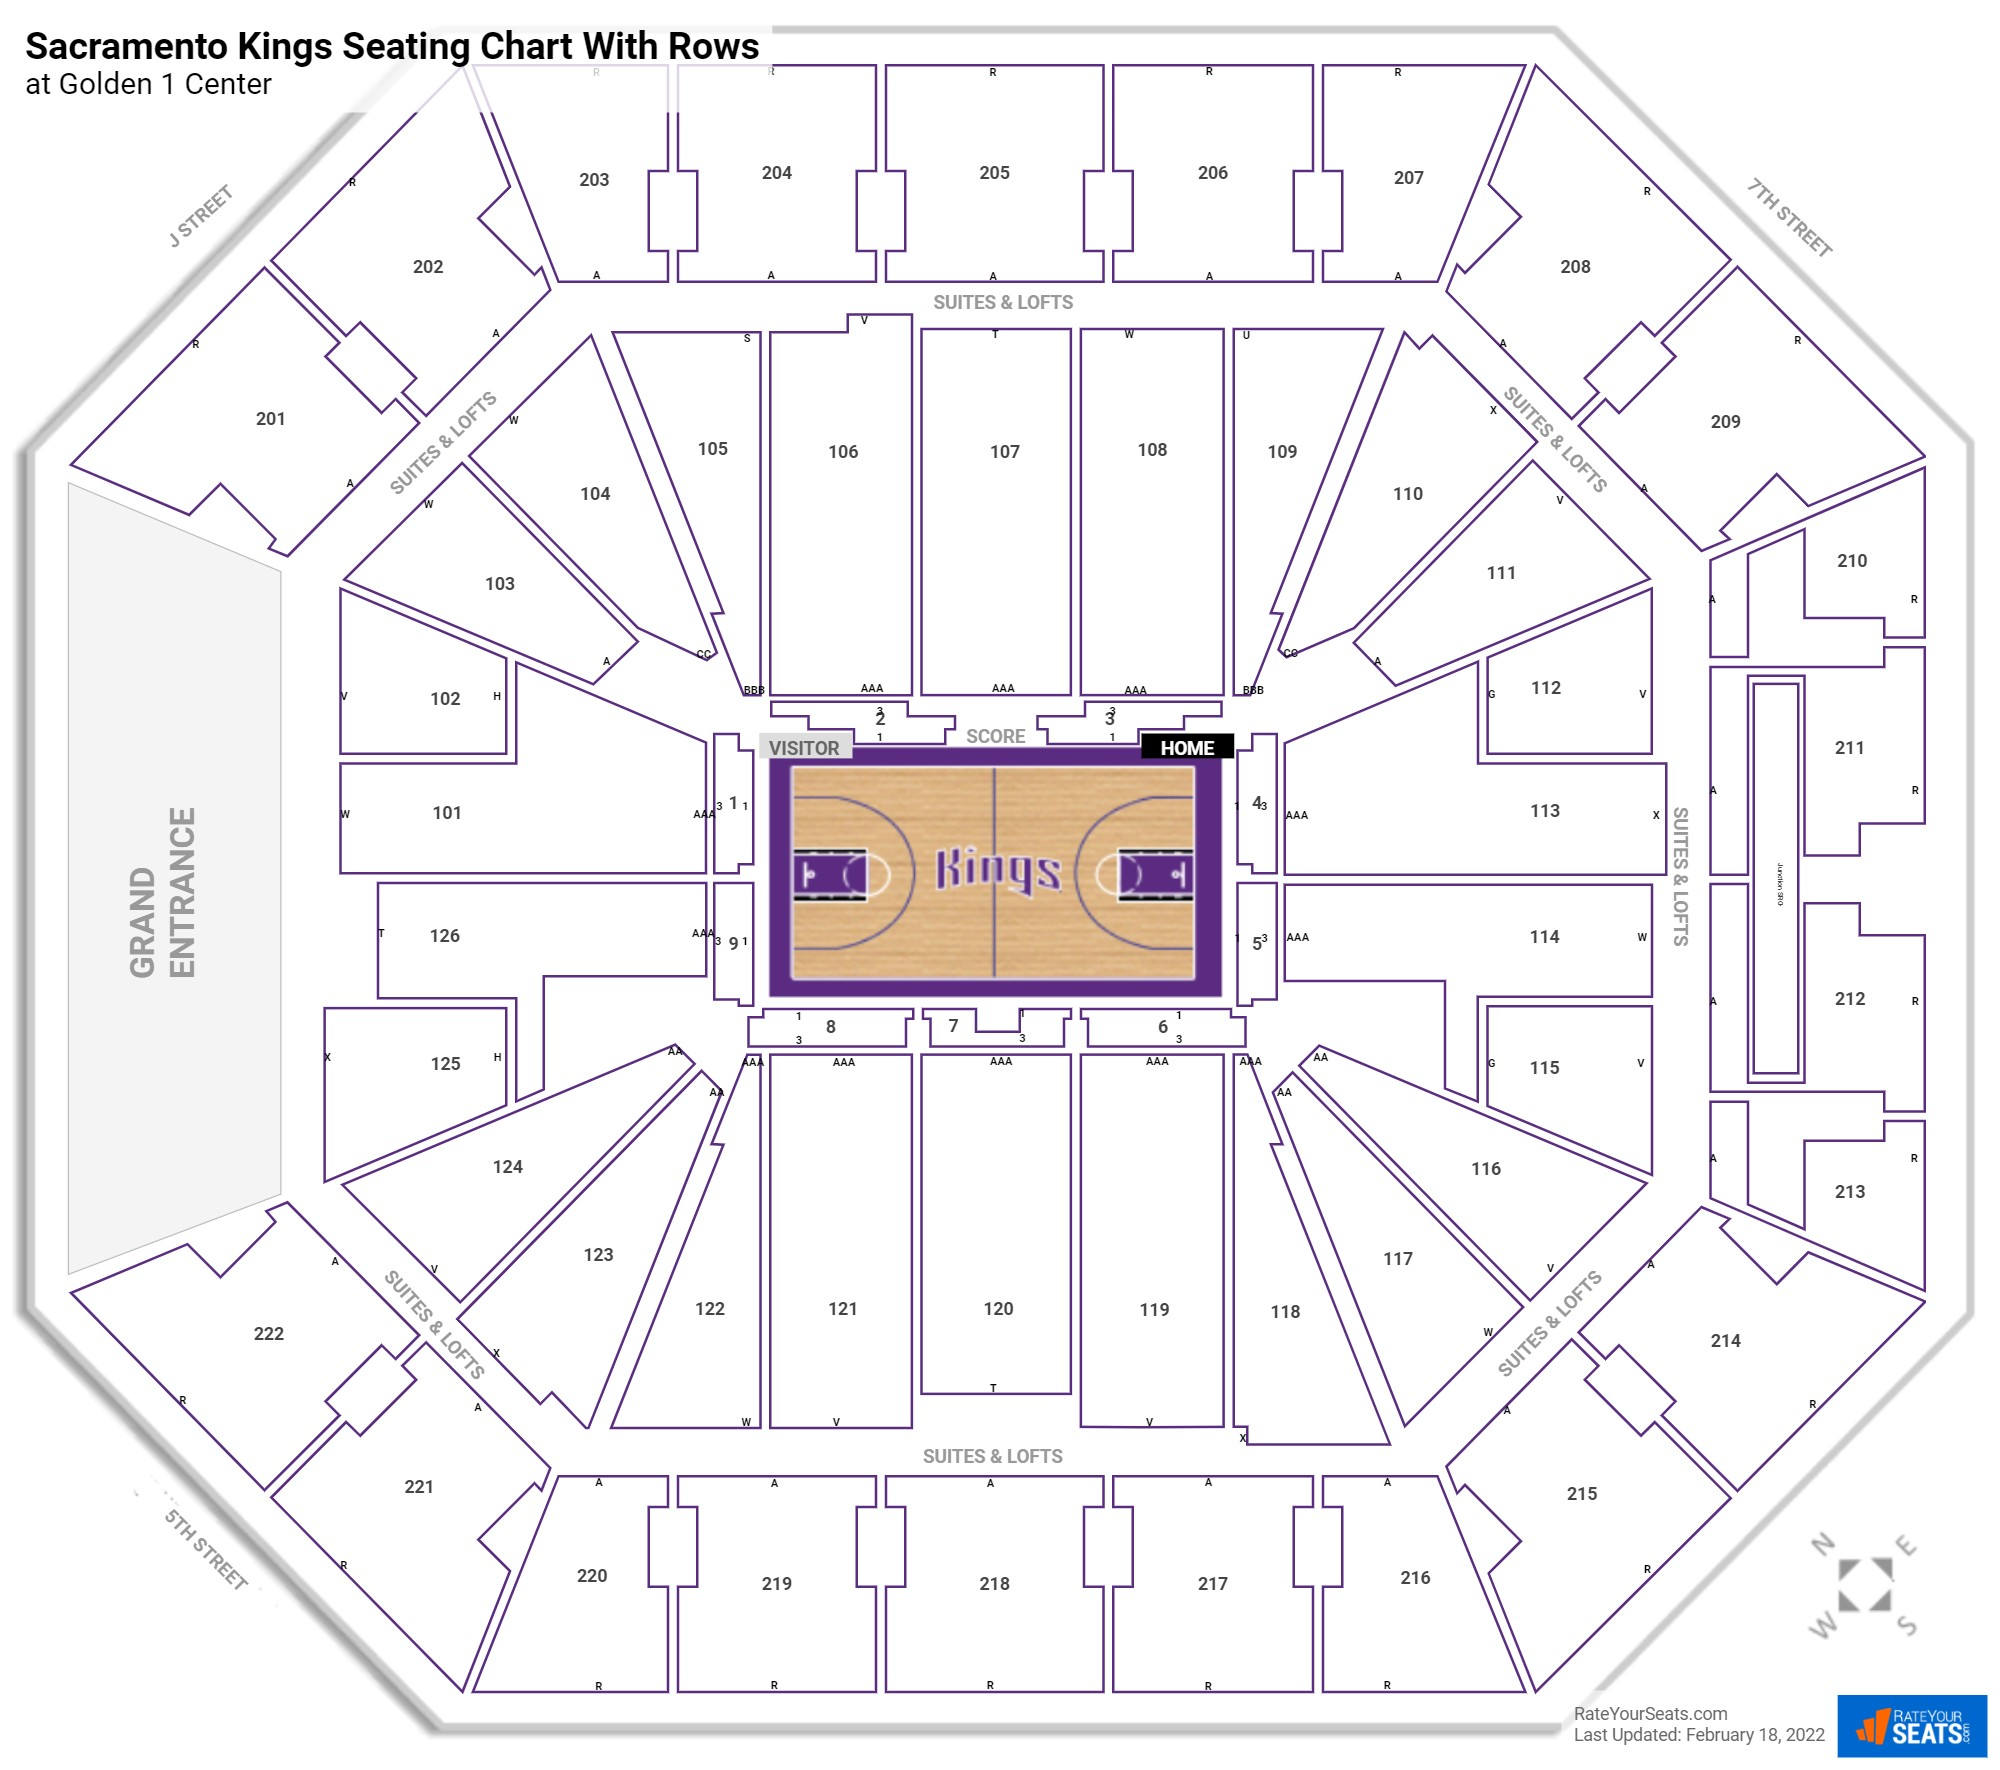 Golden 1 Center seating chart with rows basketball